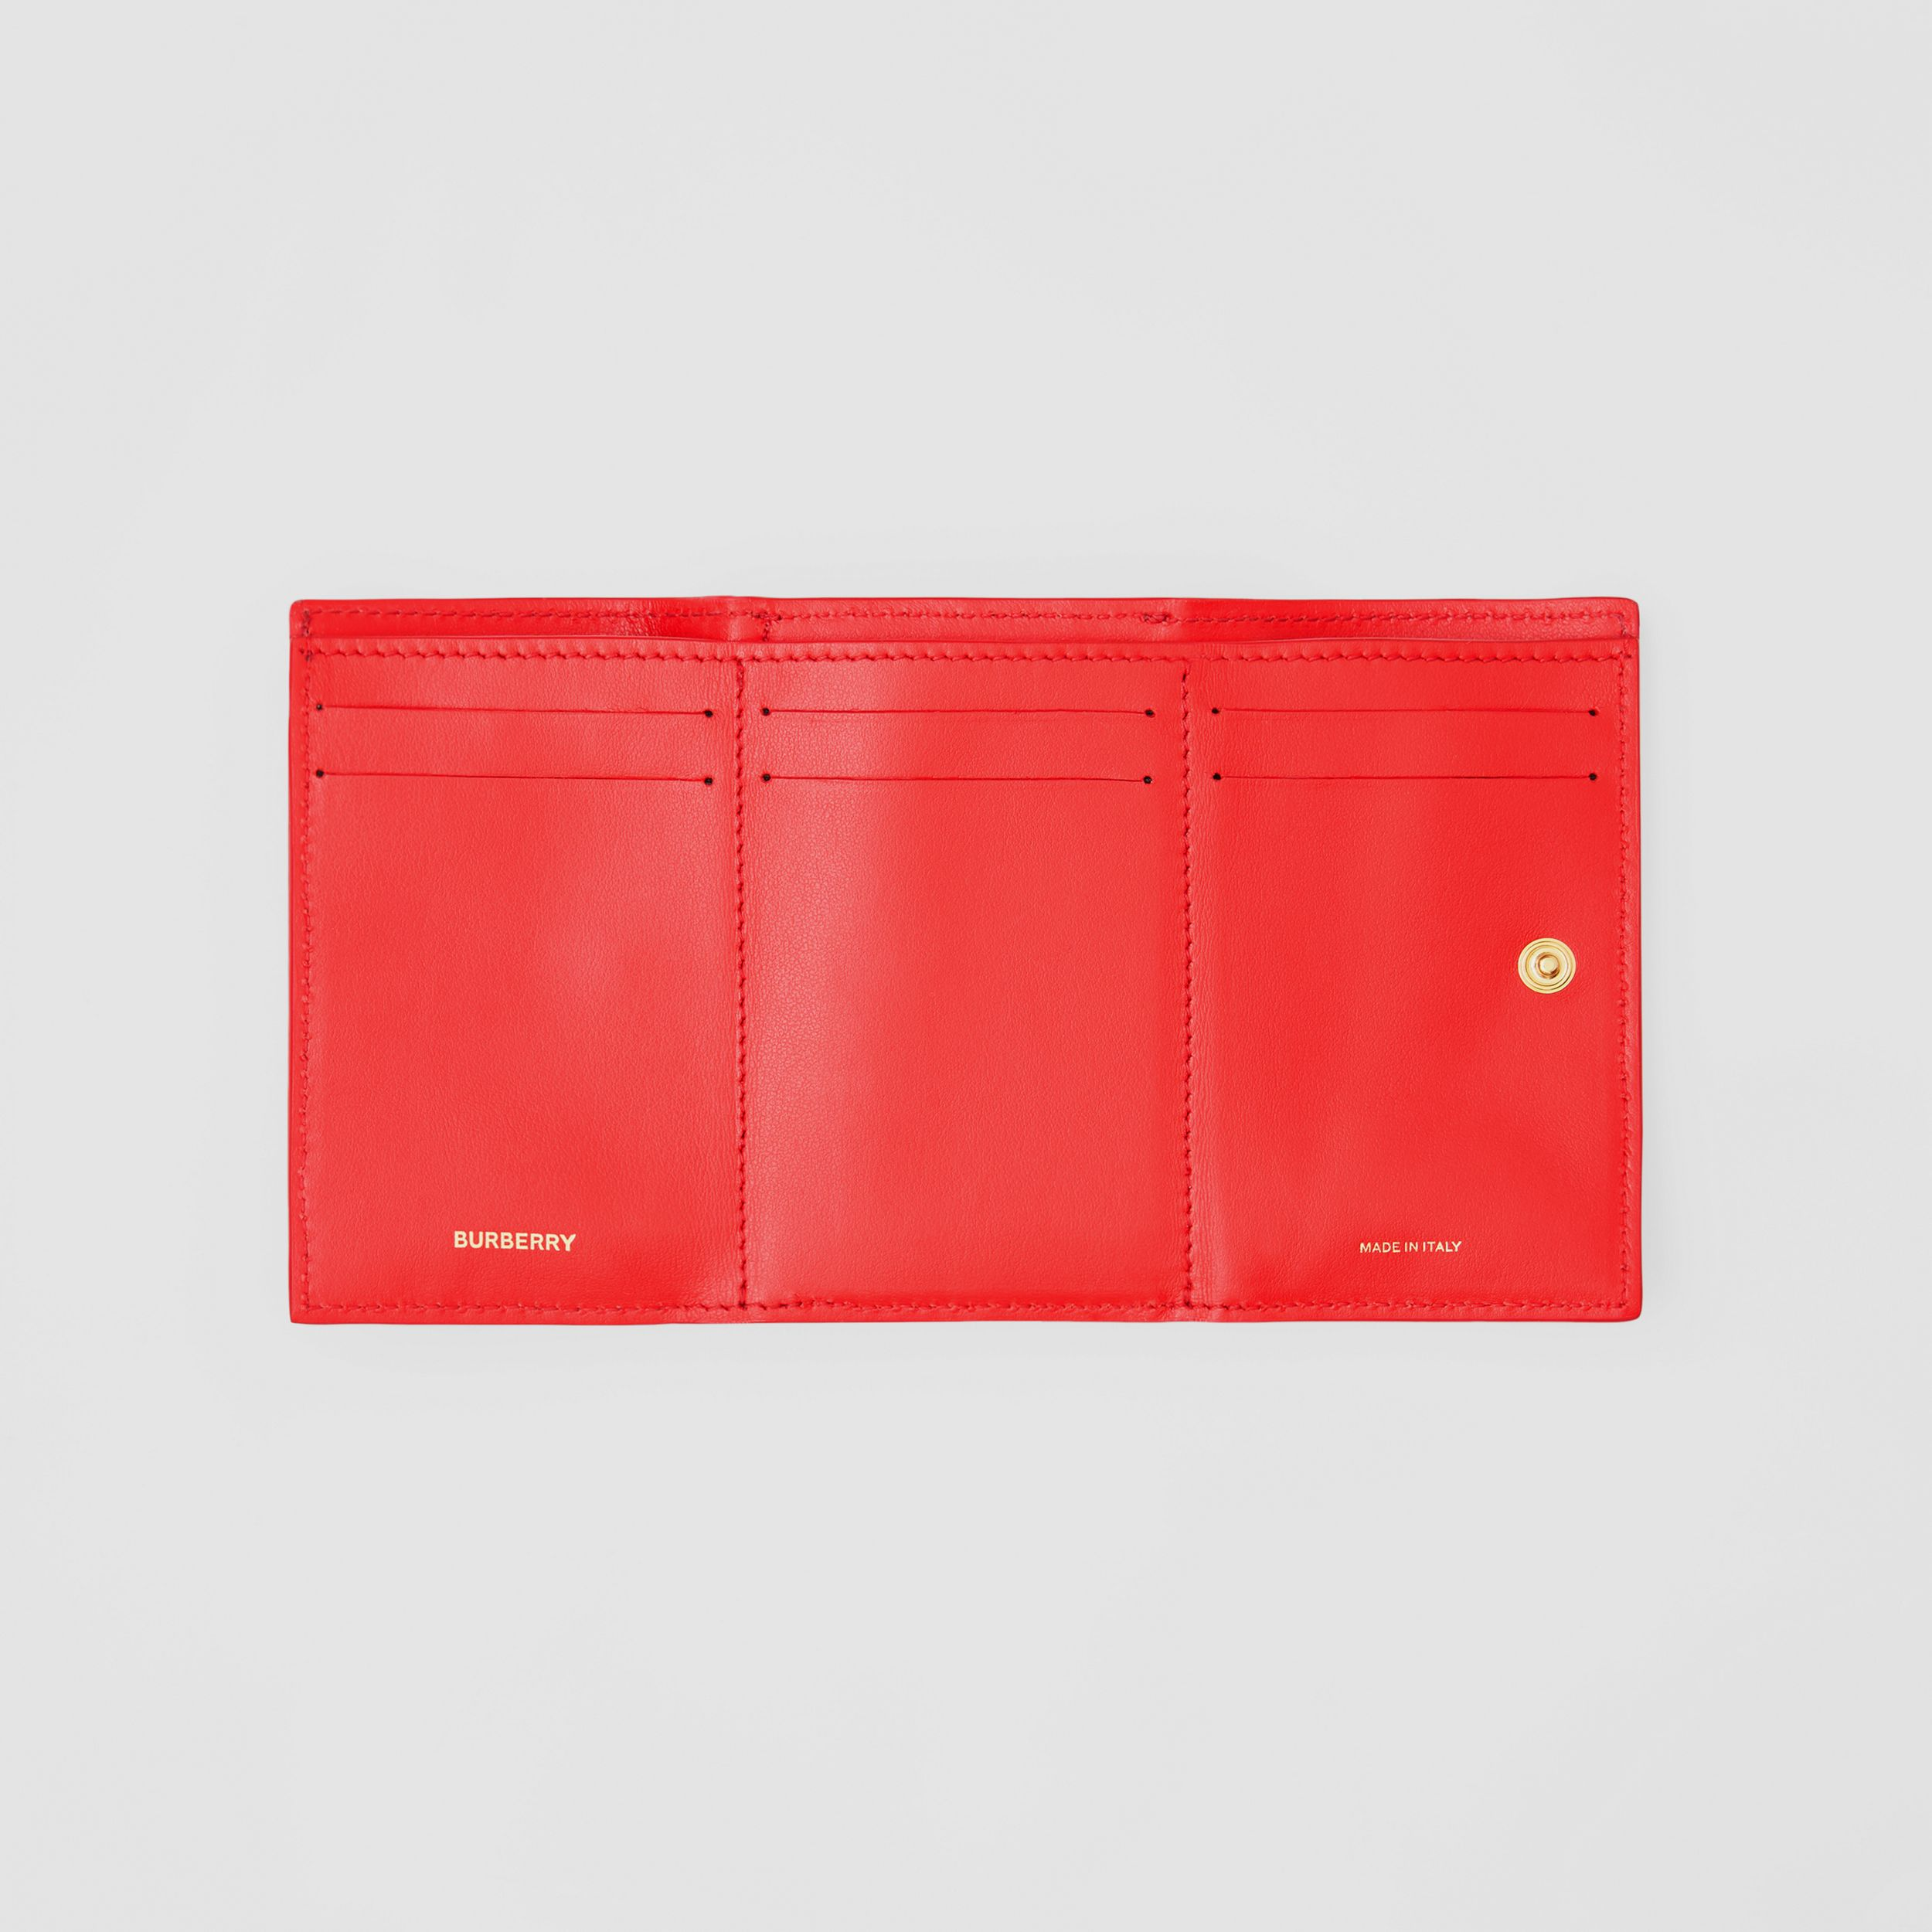 Small Grainy Leather Folding Wallet in Bright Red - Women | Burberry Canada - 3